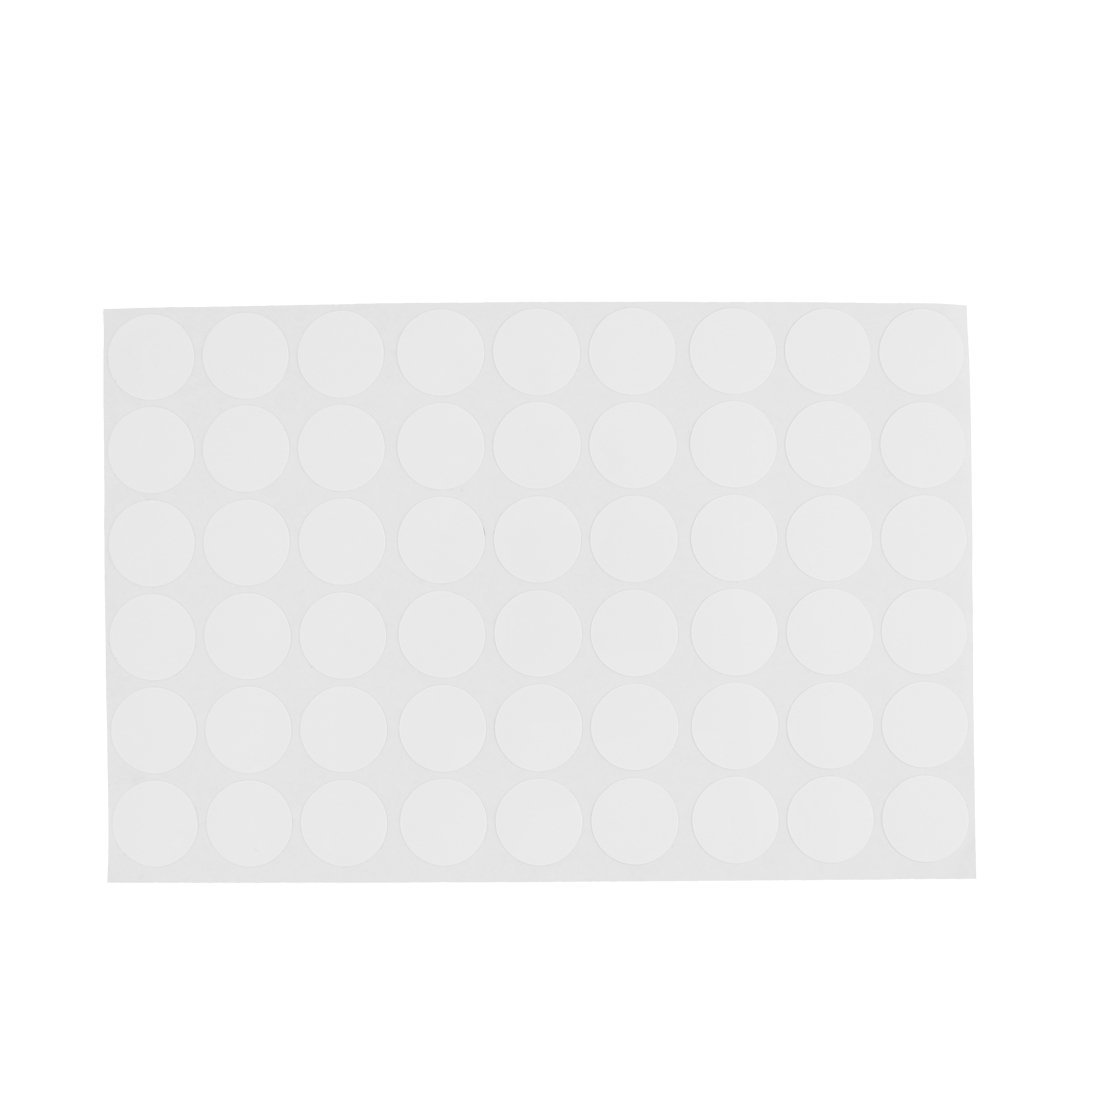 Systematic Wardrobe Cupboard Self-adhesive Screw Covers Caps Stickers 54 In 1 White Invigorating Blood Circulation And Stopping Pains